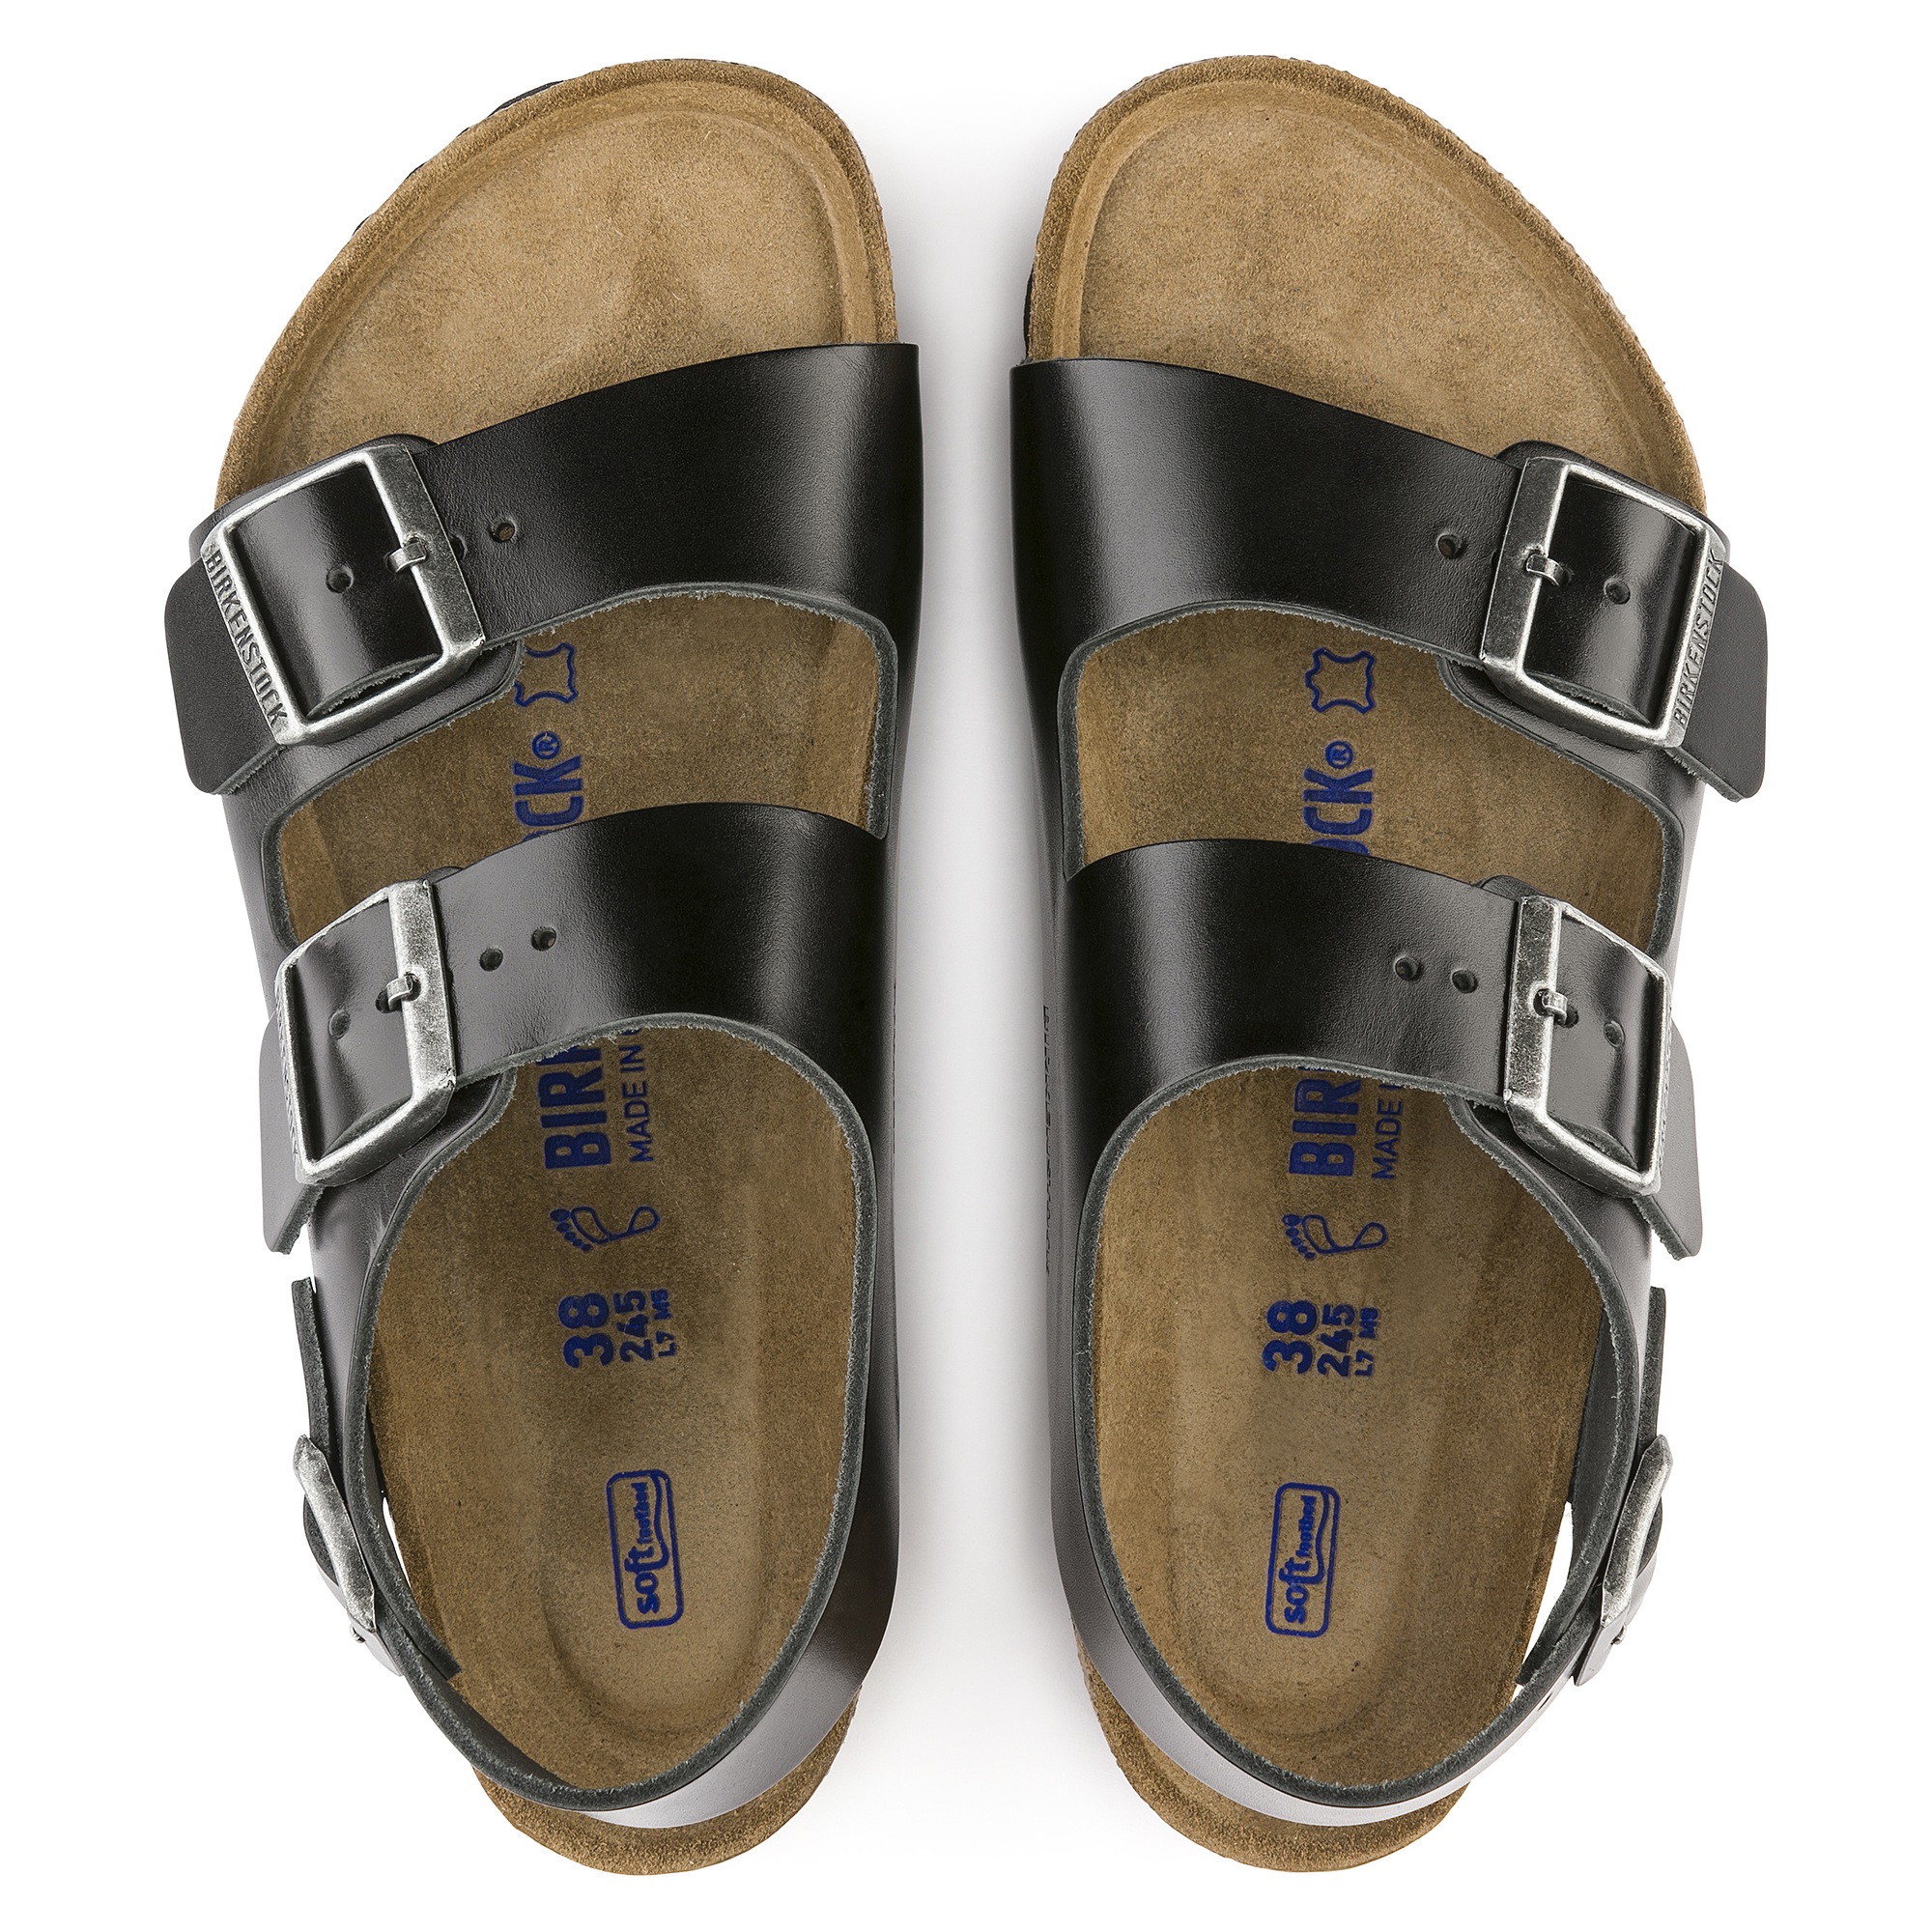 e6e313682 Milano Real Leather Soft footbed | shop online at BIRKENSTOCK